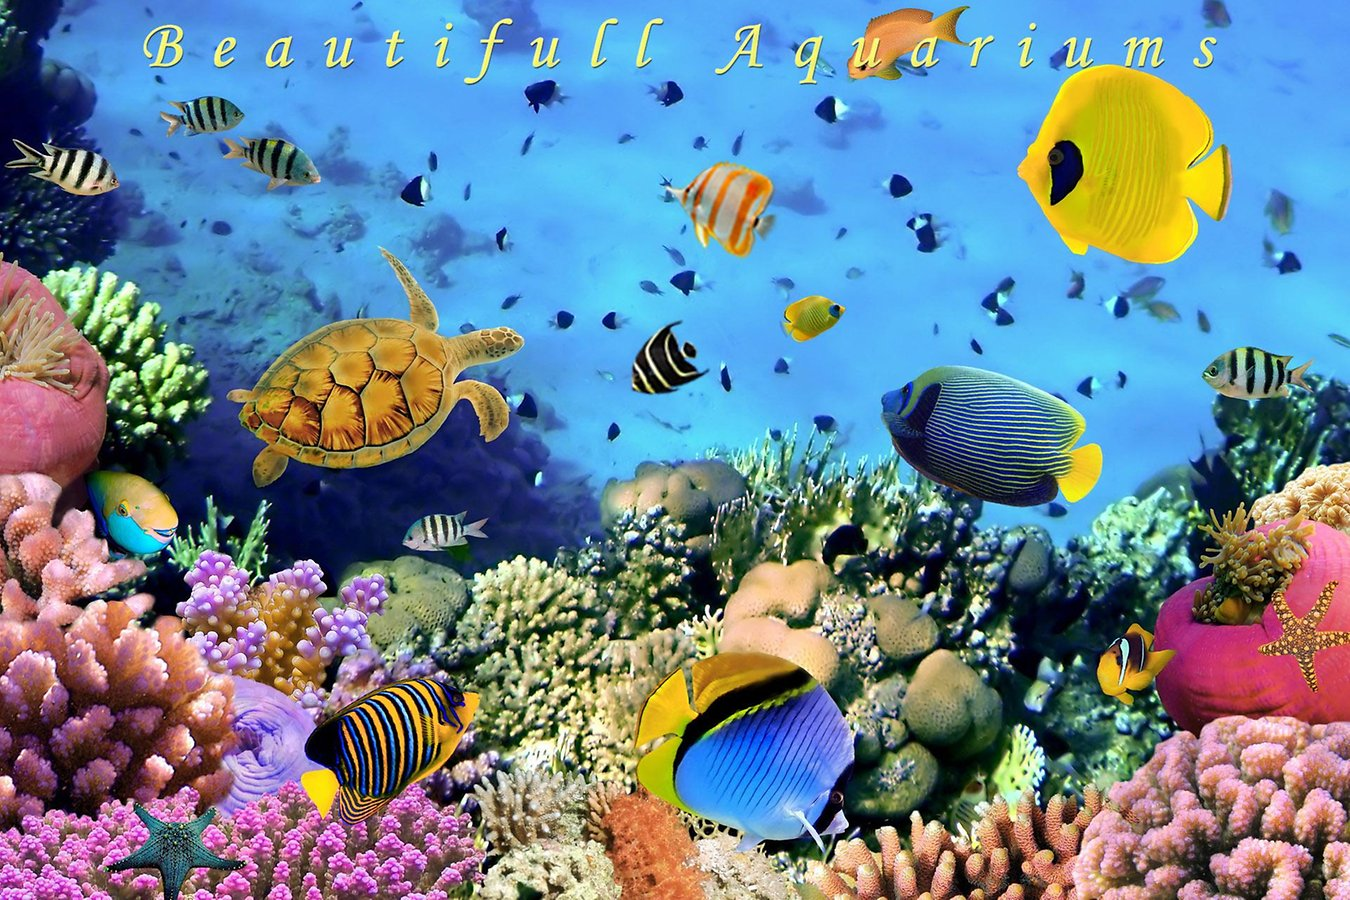 Aquarium Live Wallpaper   Android Apps and Tests   AndroidPIT 1350x900